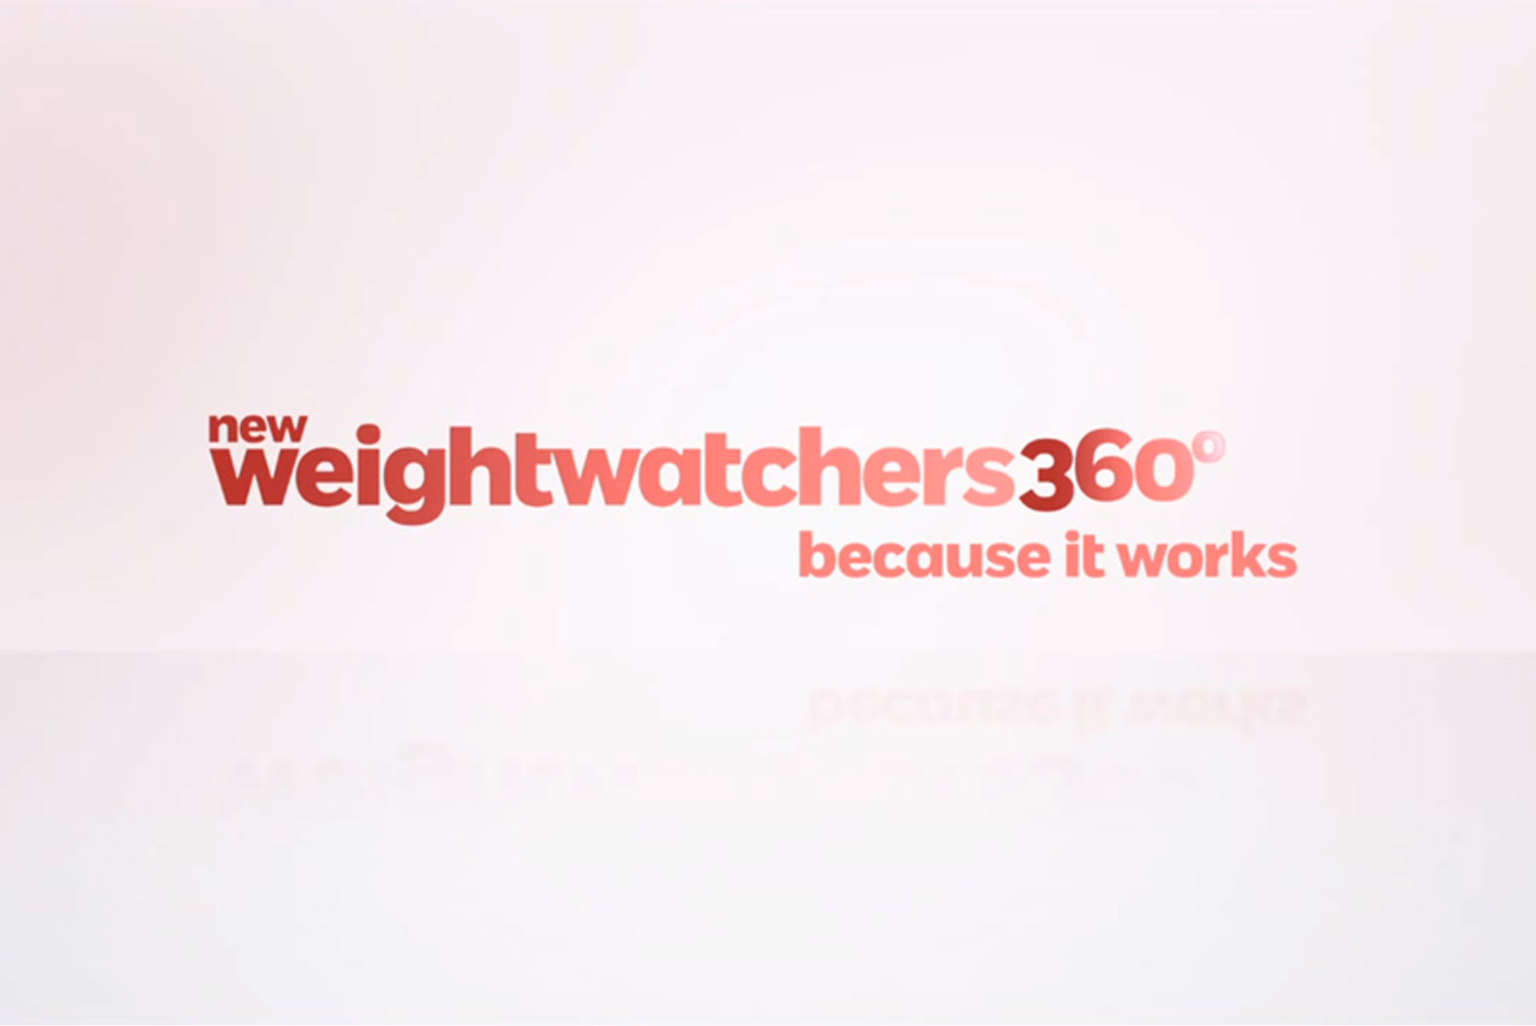 Vllg mckl fort weightwatchers